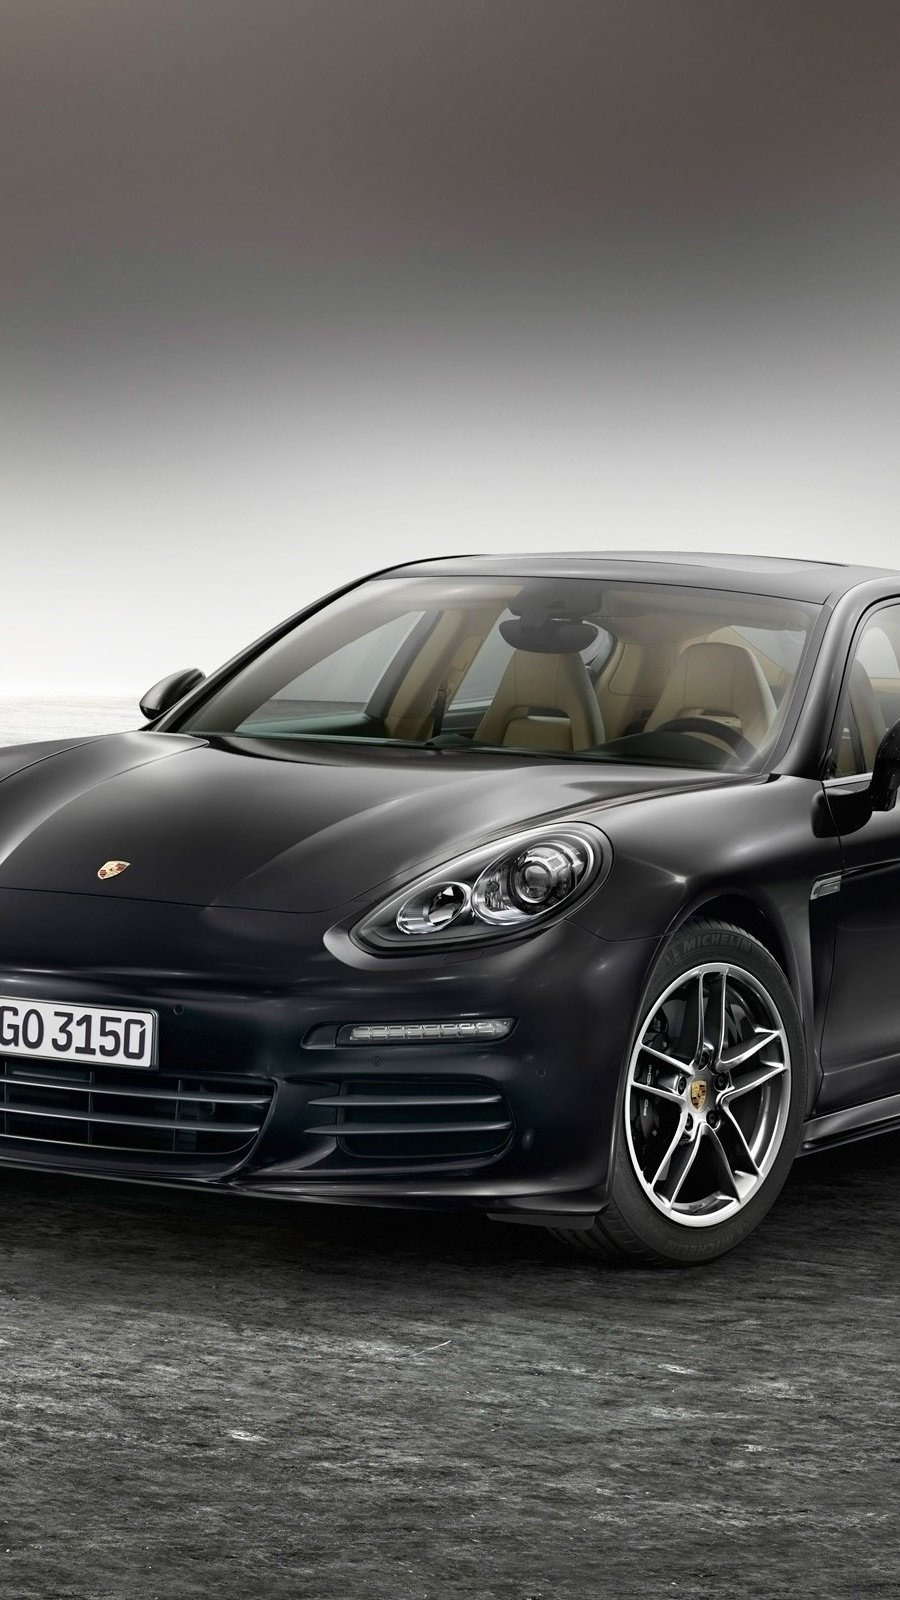 Wallpaper Porsche Panamera Edition Vertical